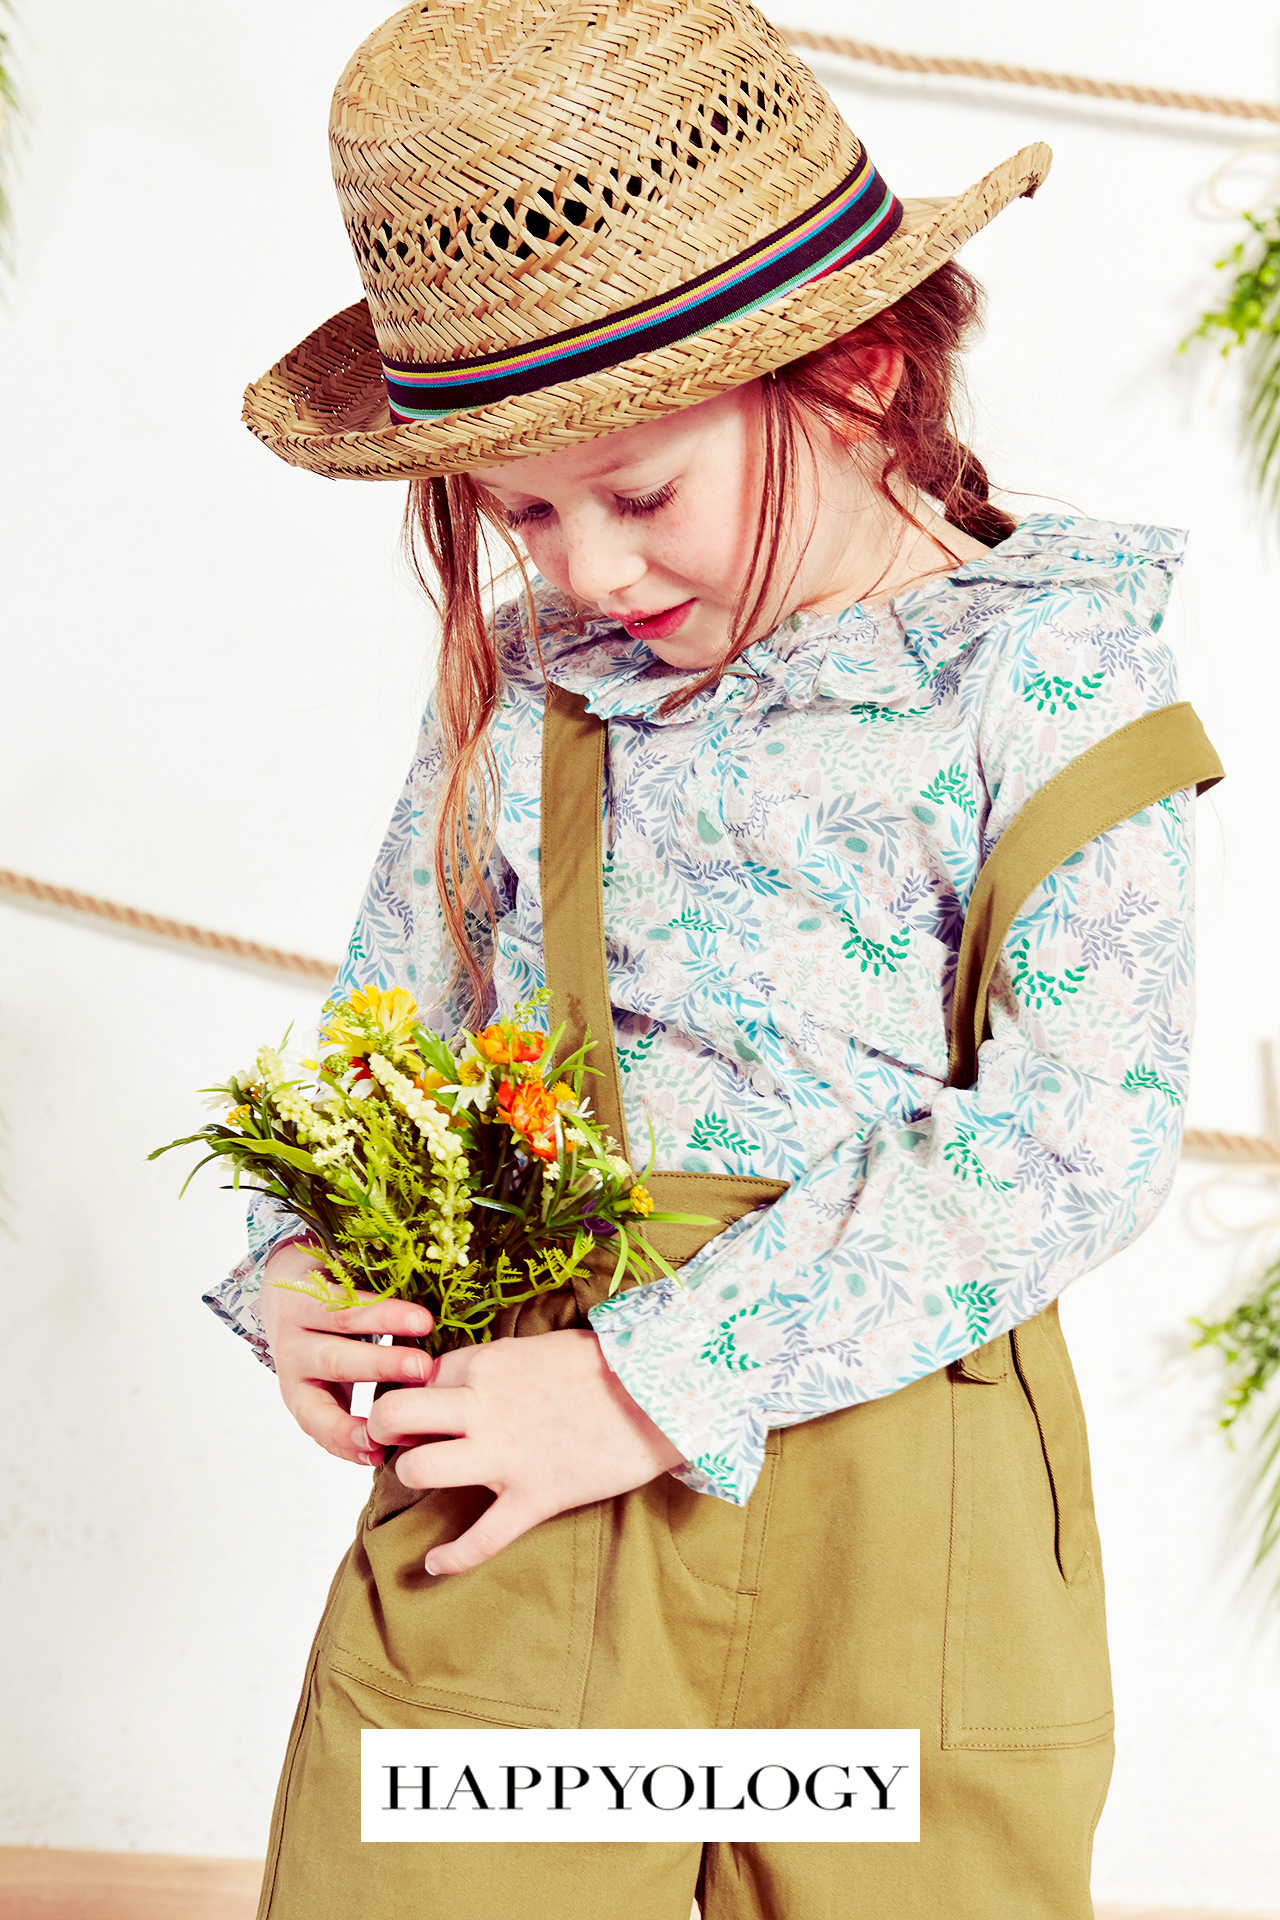 Happyology kids fashion campaign SS 1